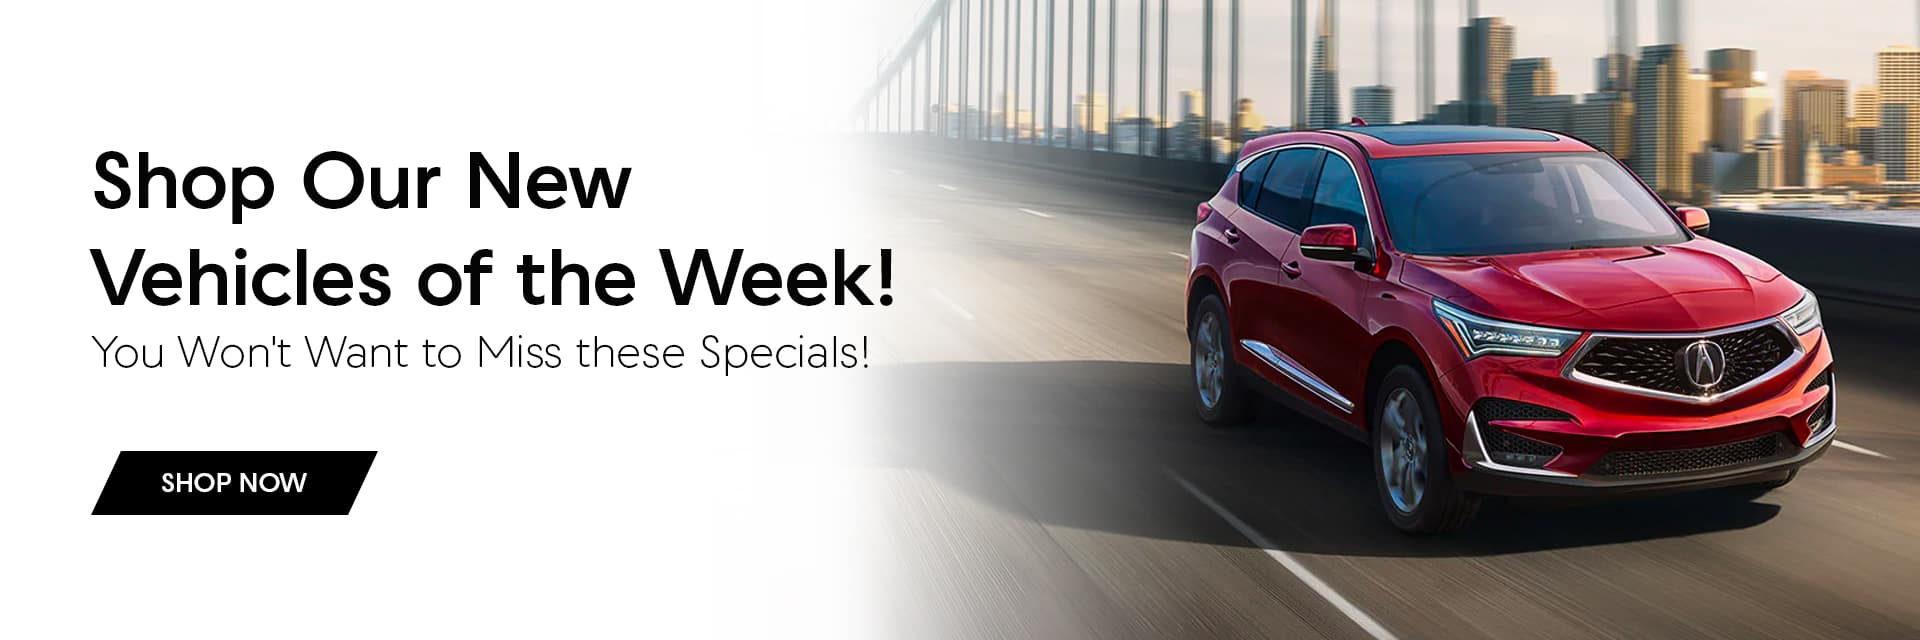 new vehicles of the week